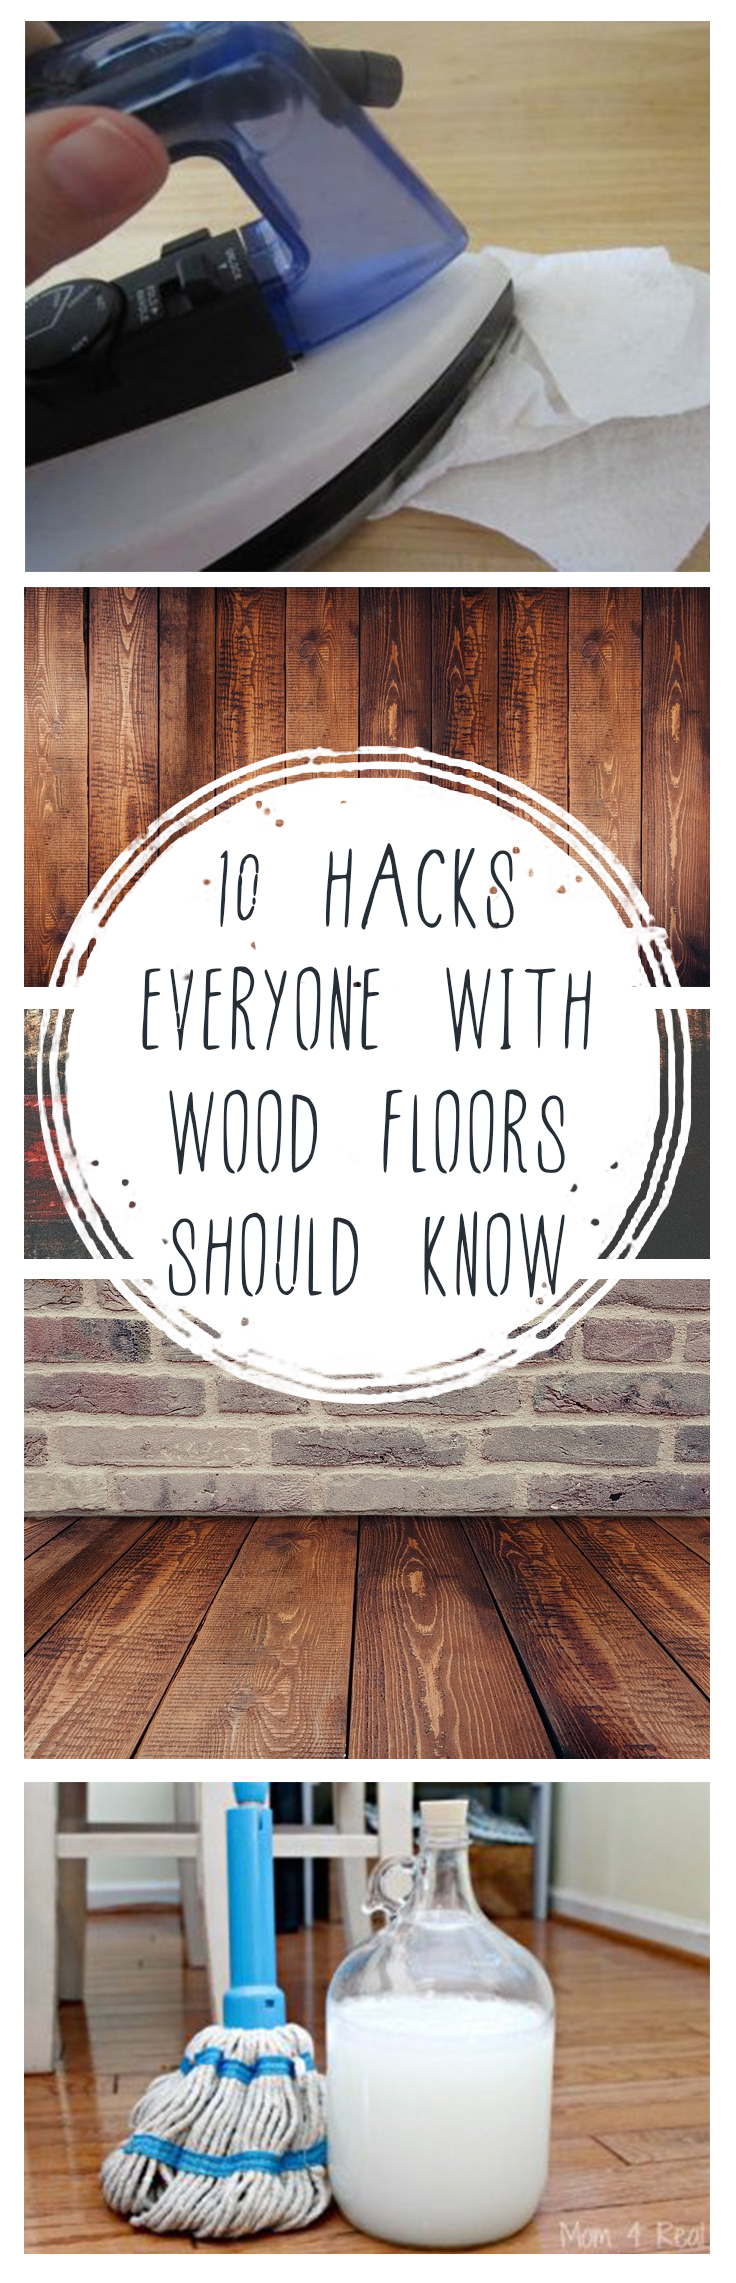 Wood Floor Hacks You Should Know- Make Life Easier with these Wood Floor Hacks